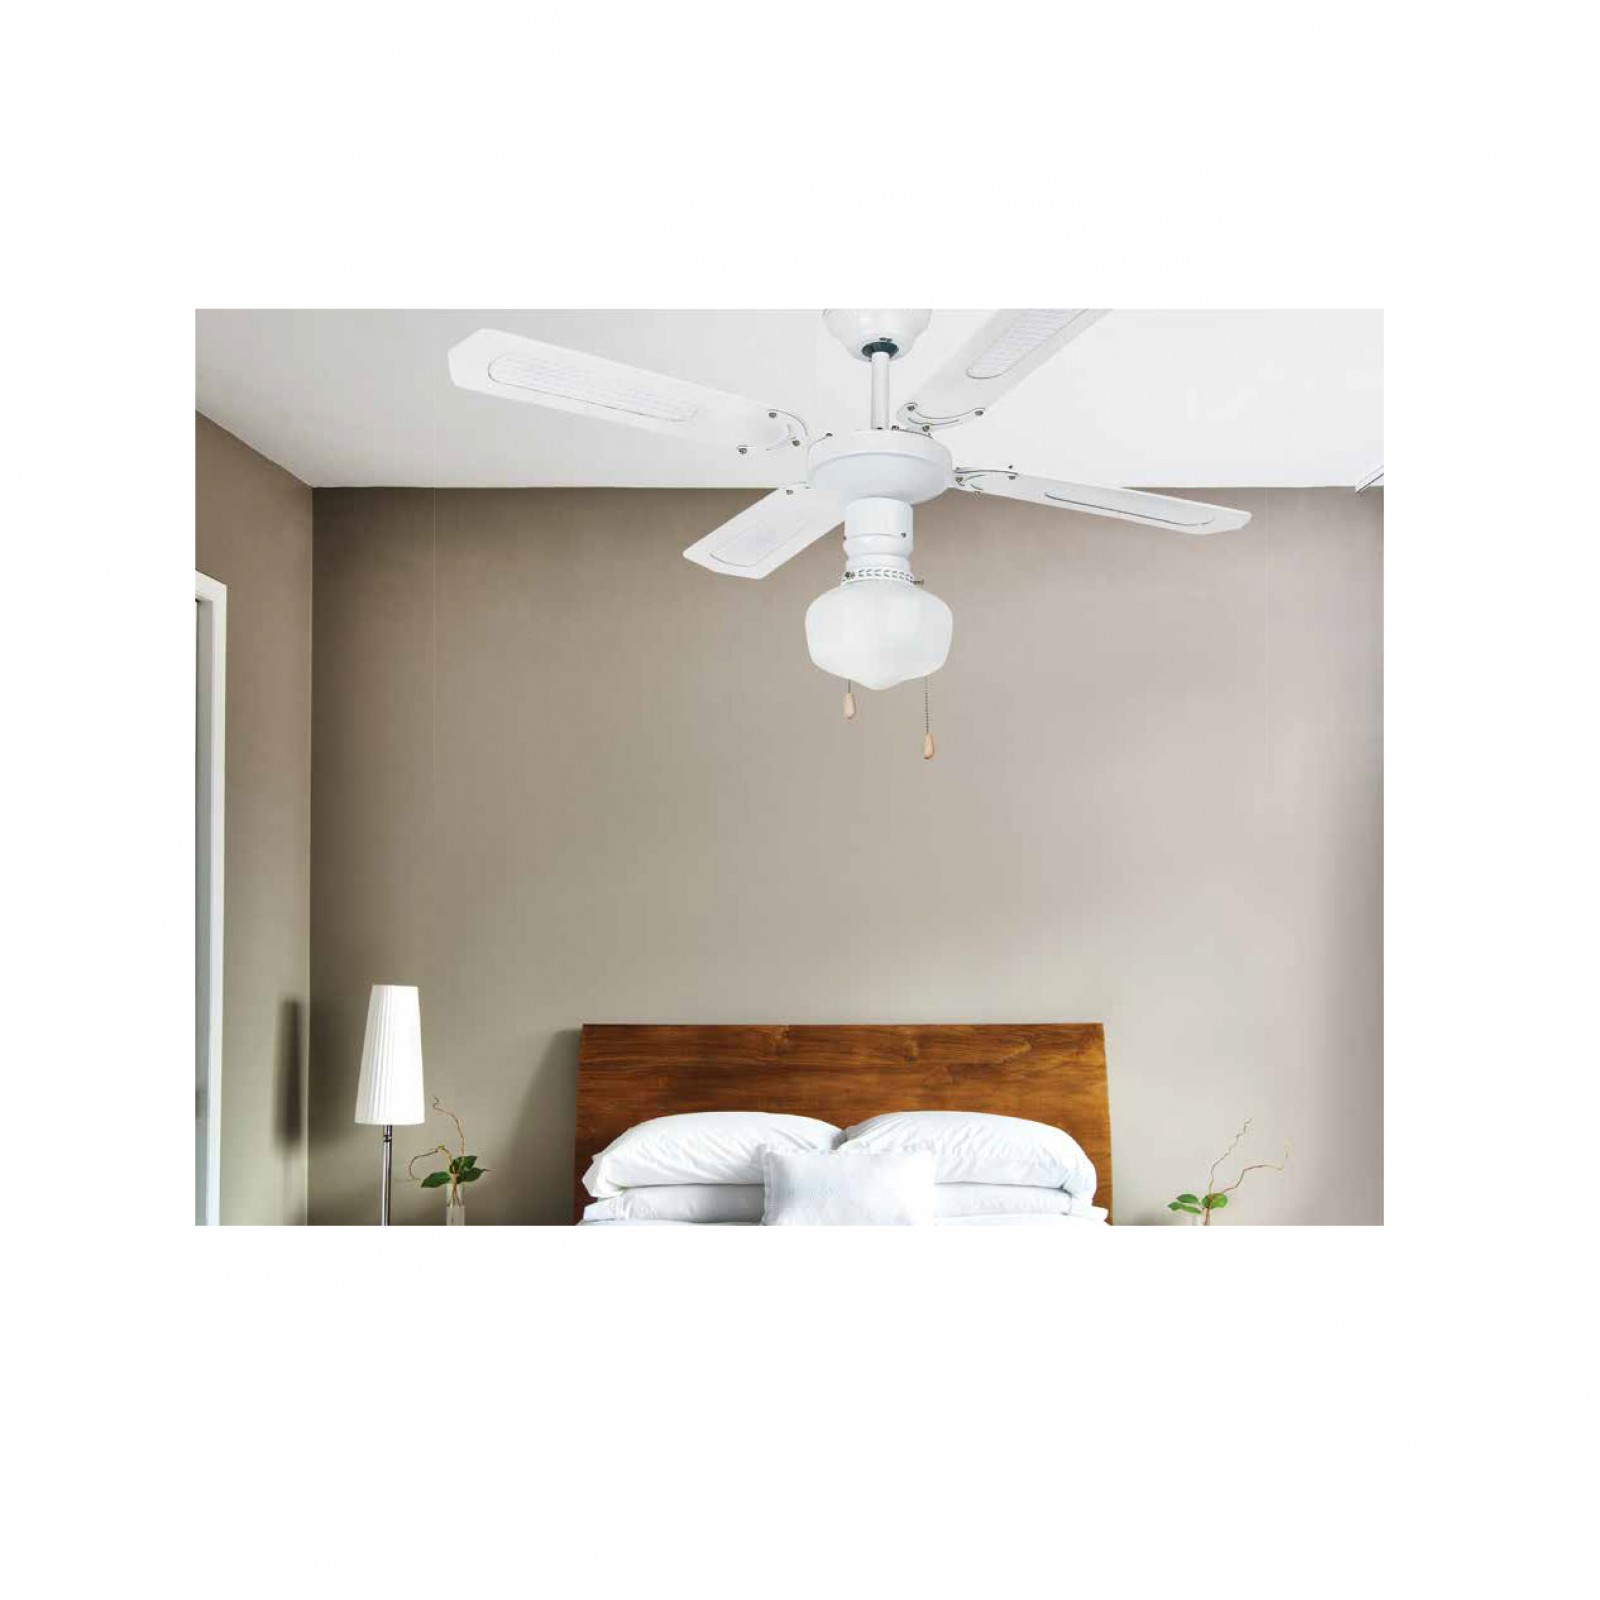 deckenventilator aruba wei mit licht zugschnur 106cm deckenventilator deckenventilatoren mit. Black Bedroom Furniture Sets. Home Design Ideas